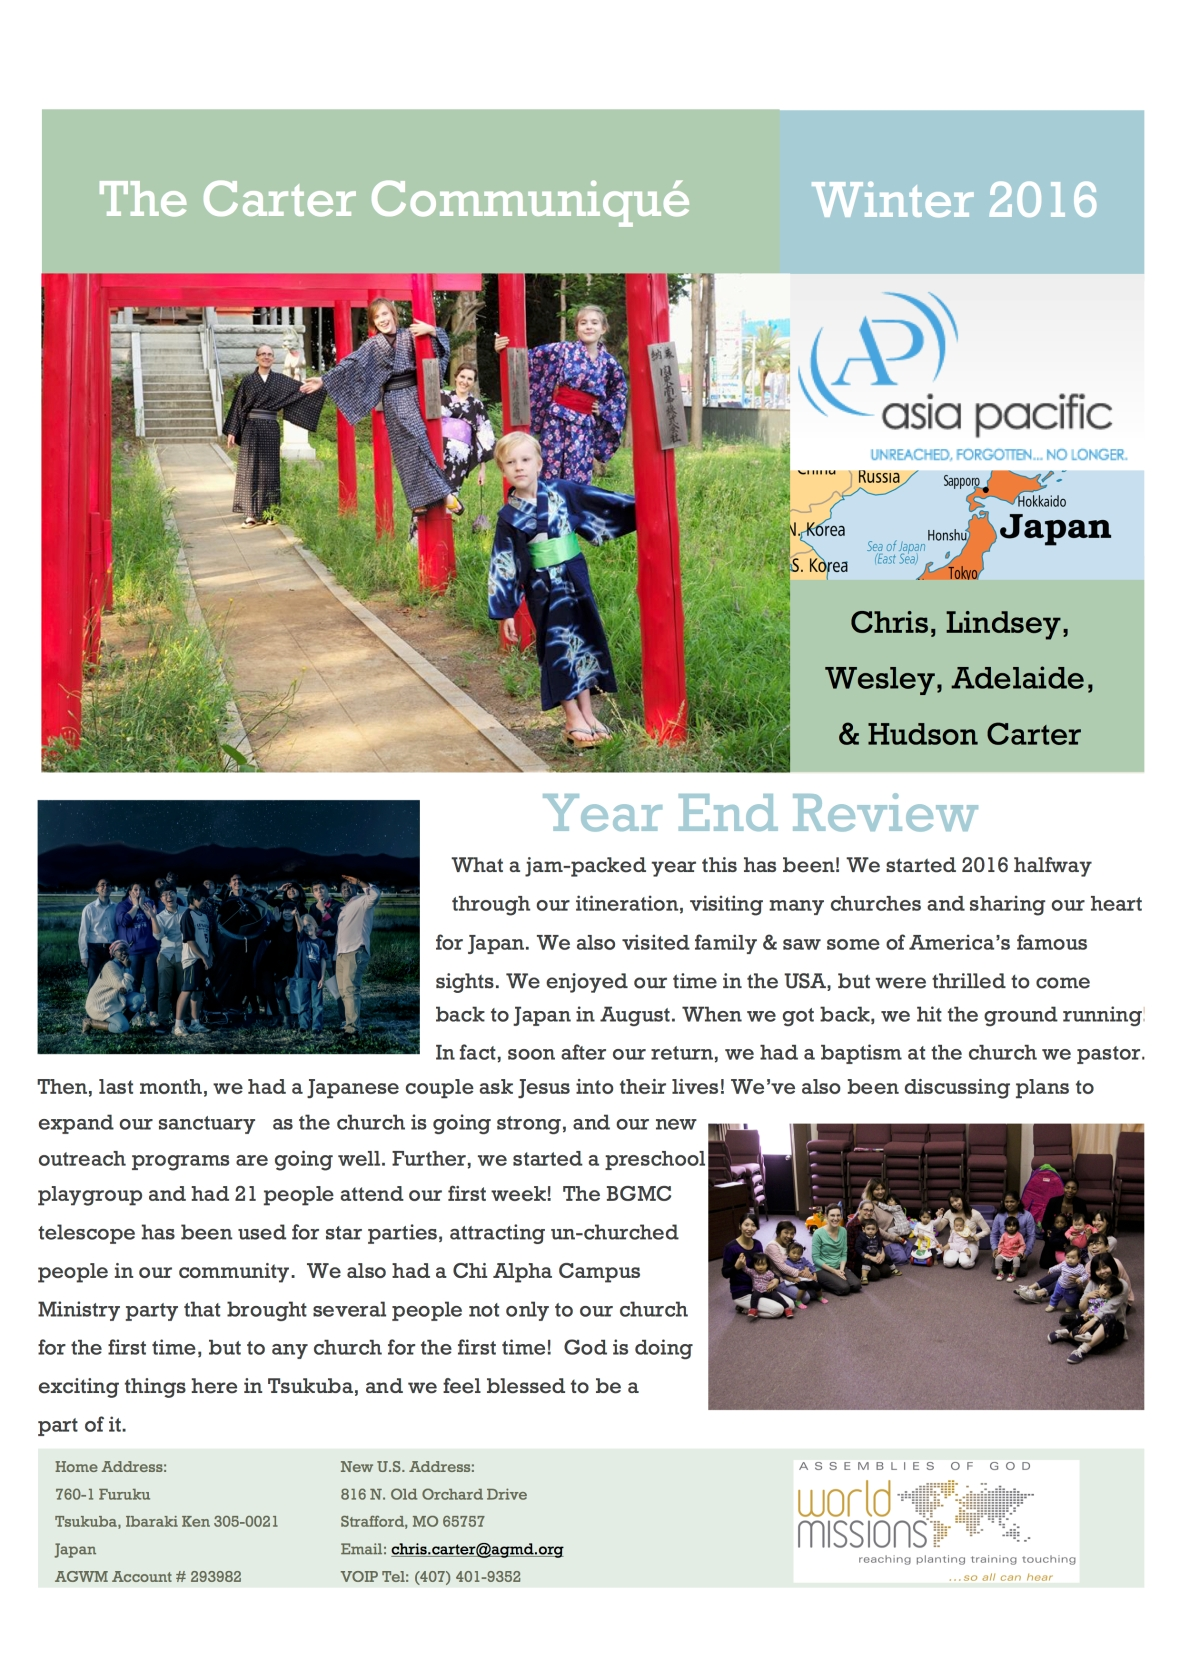 carters-in-japan-newsletter-winter-2016-final-a4c-page1